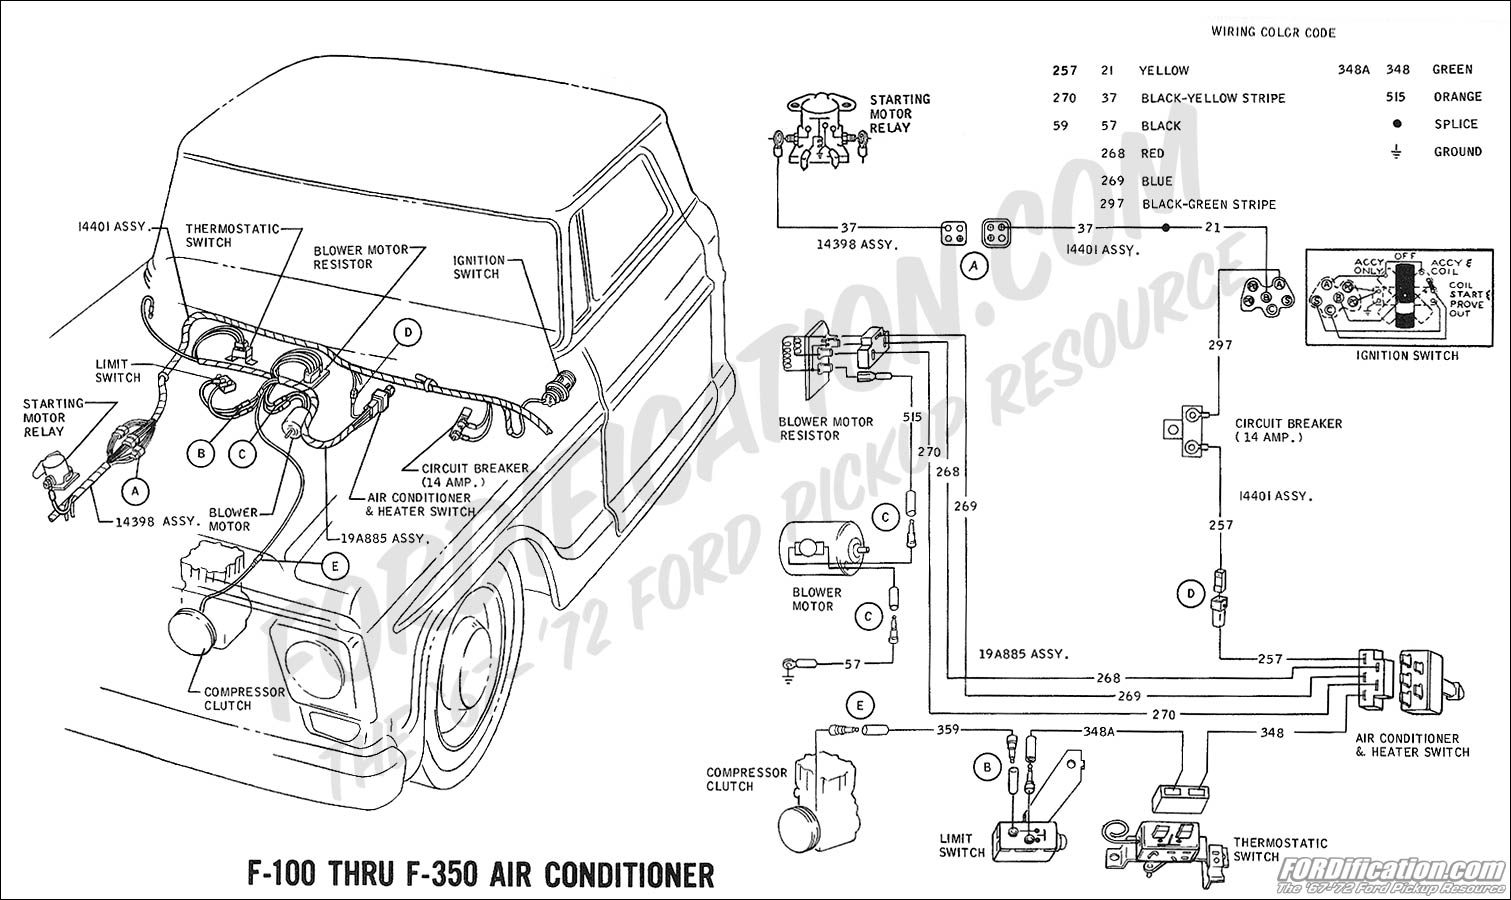 1996 Ford F 350 Radio Wiring Diagram Library Powerstroke Truck Technical Drawings And Schematics Section H 1977 250